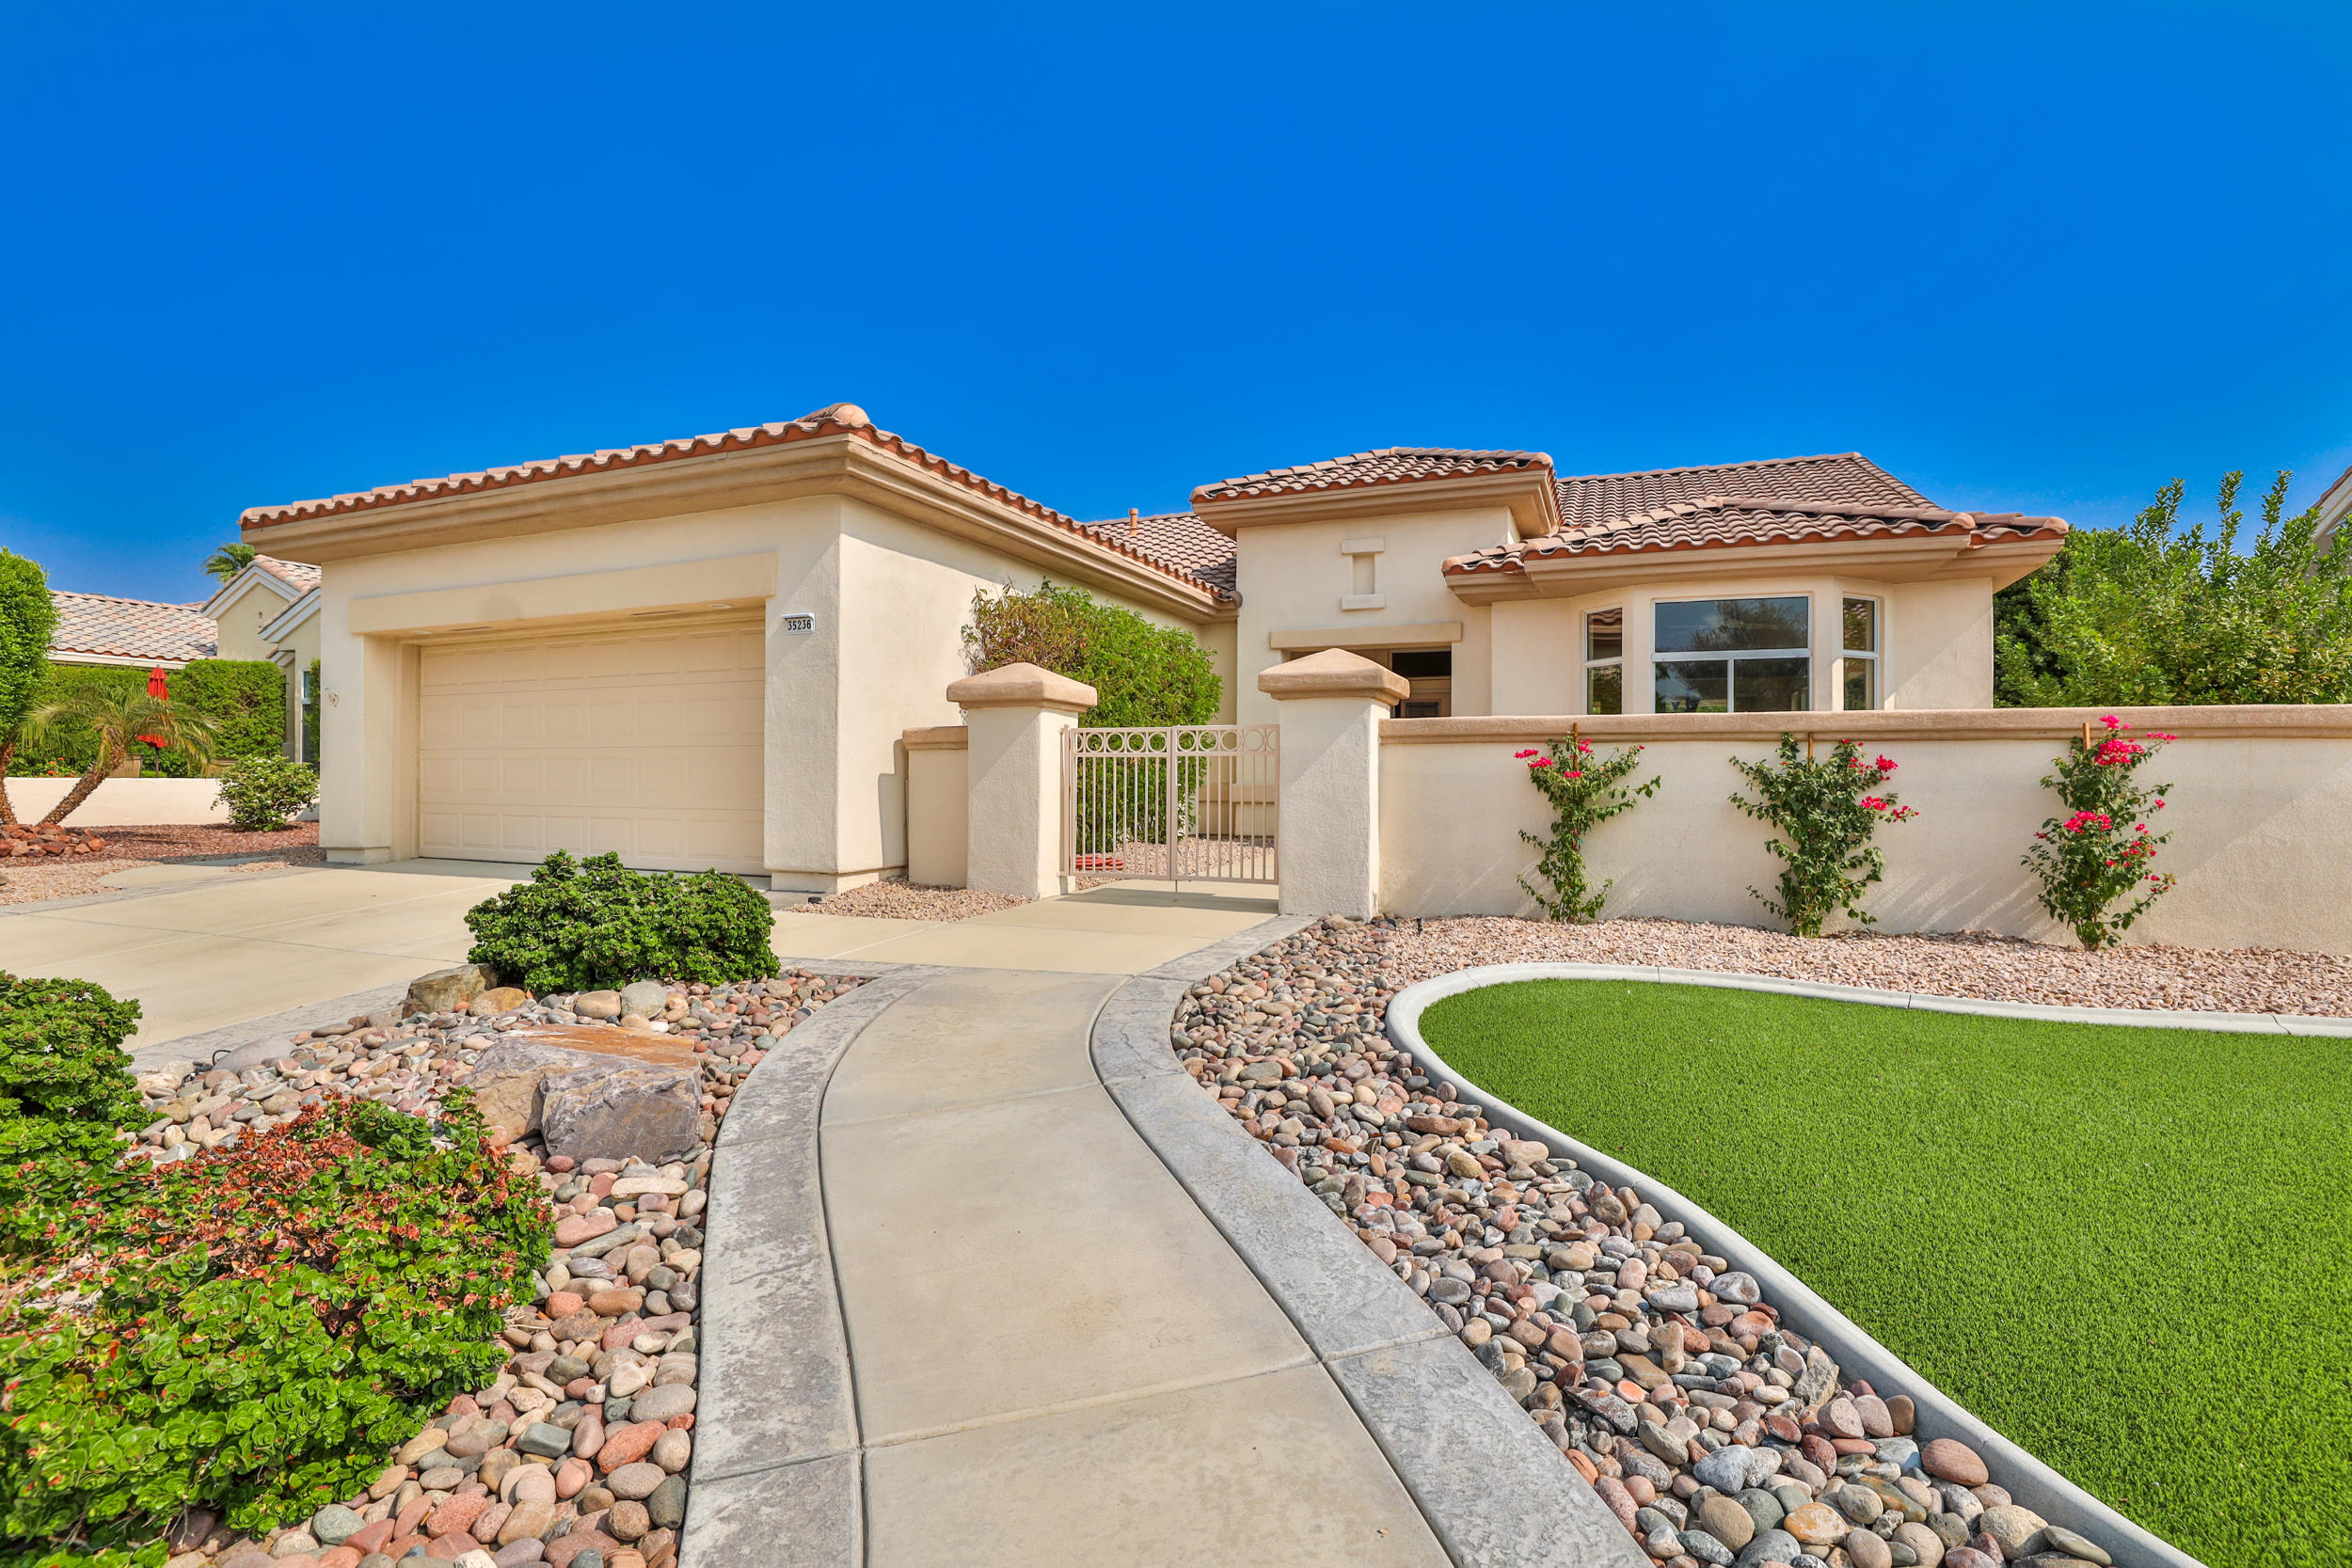 Photo of 35236 Minuet Drive, Palm Desert, CA 92211